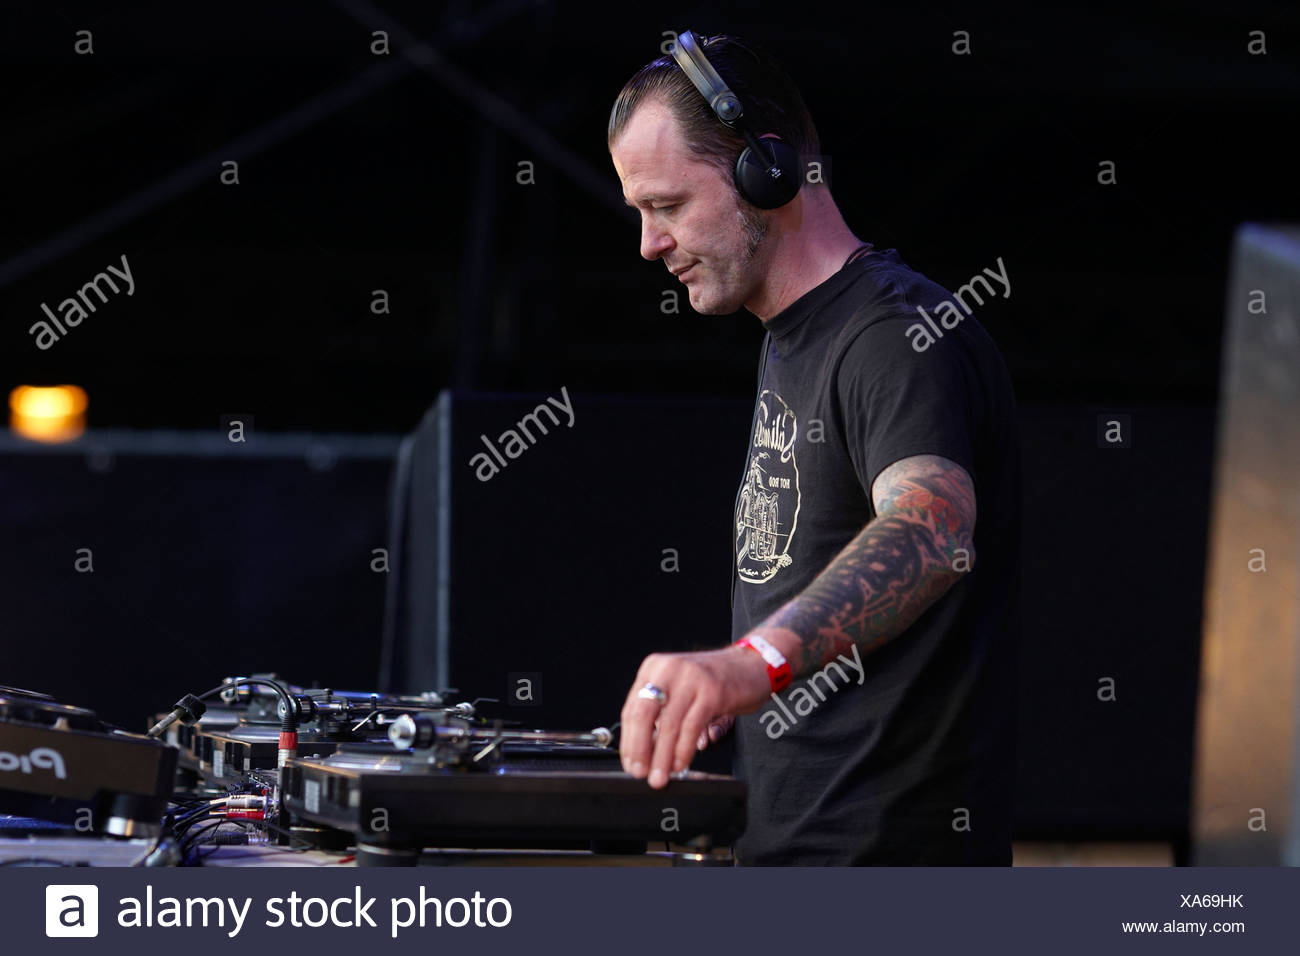 Techno Nature One Festival 2009, DJ Dag, Kastellaun, Rhineland-Palatinate, Germany, Europe Stock Photo